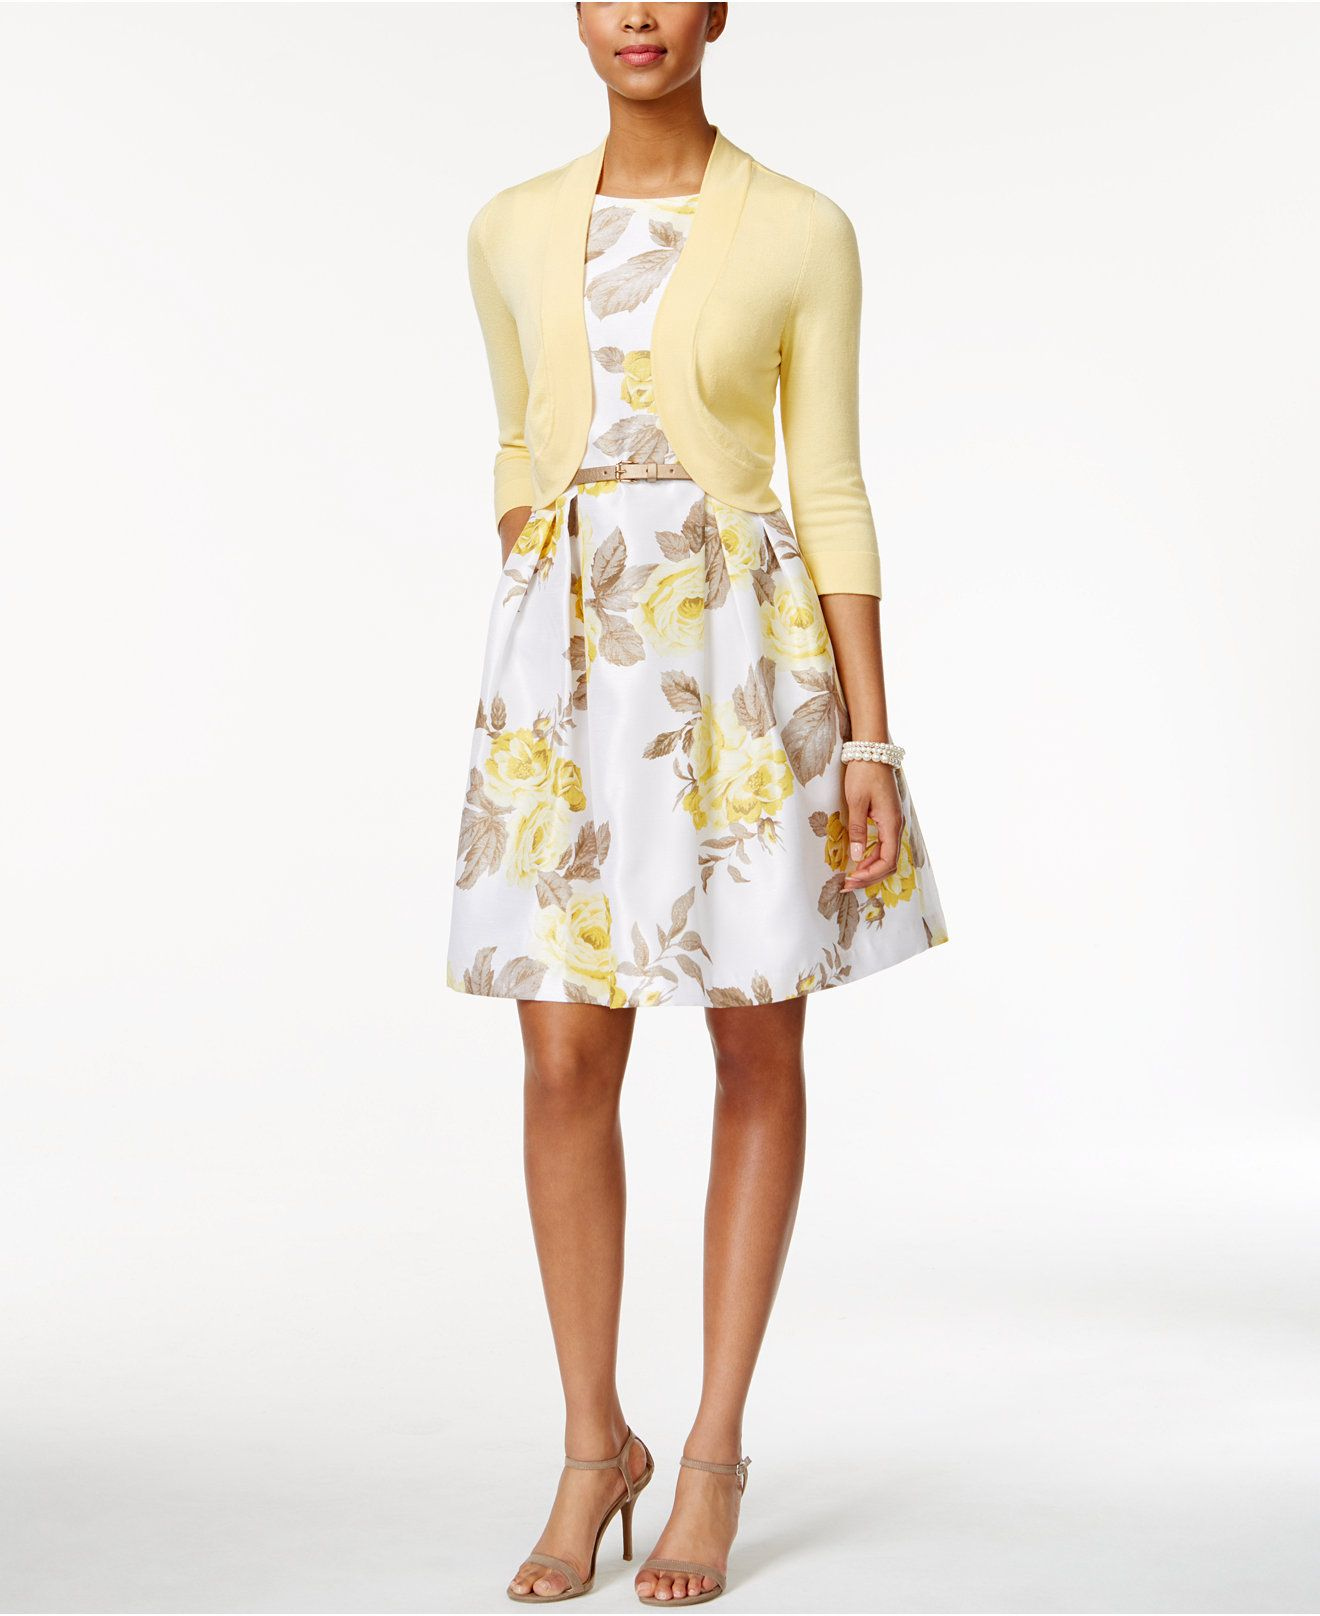 c53a89aadcbb0 Jessica Howard Belted Floral-Print Fit & Flare Dress and Cardigan - Dresses  - Women - Macy's